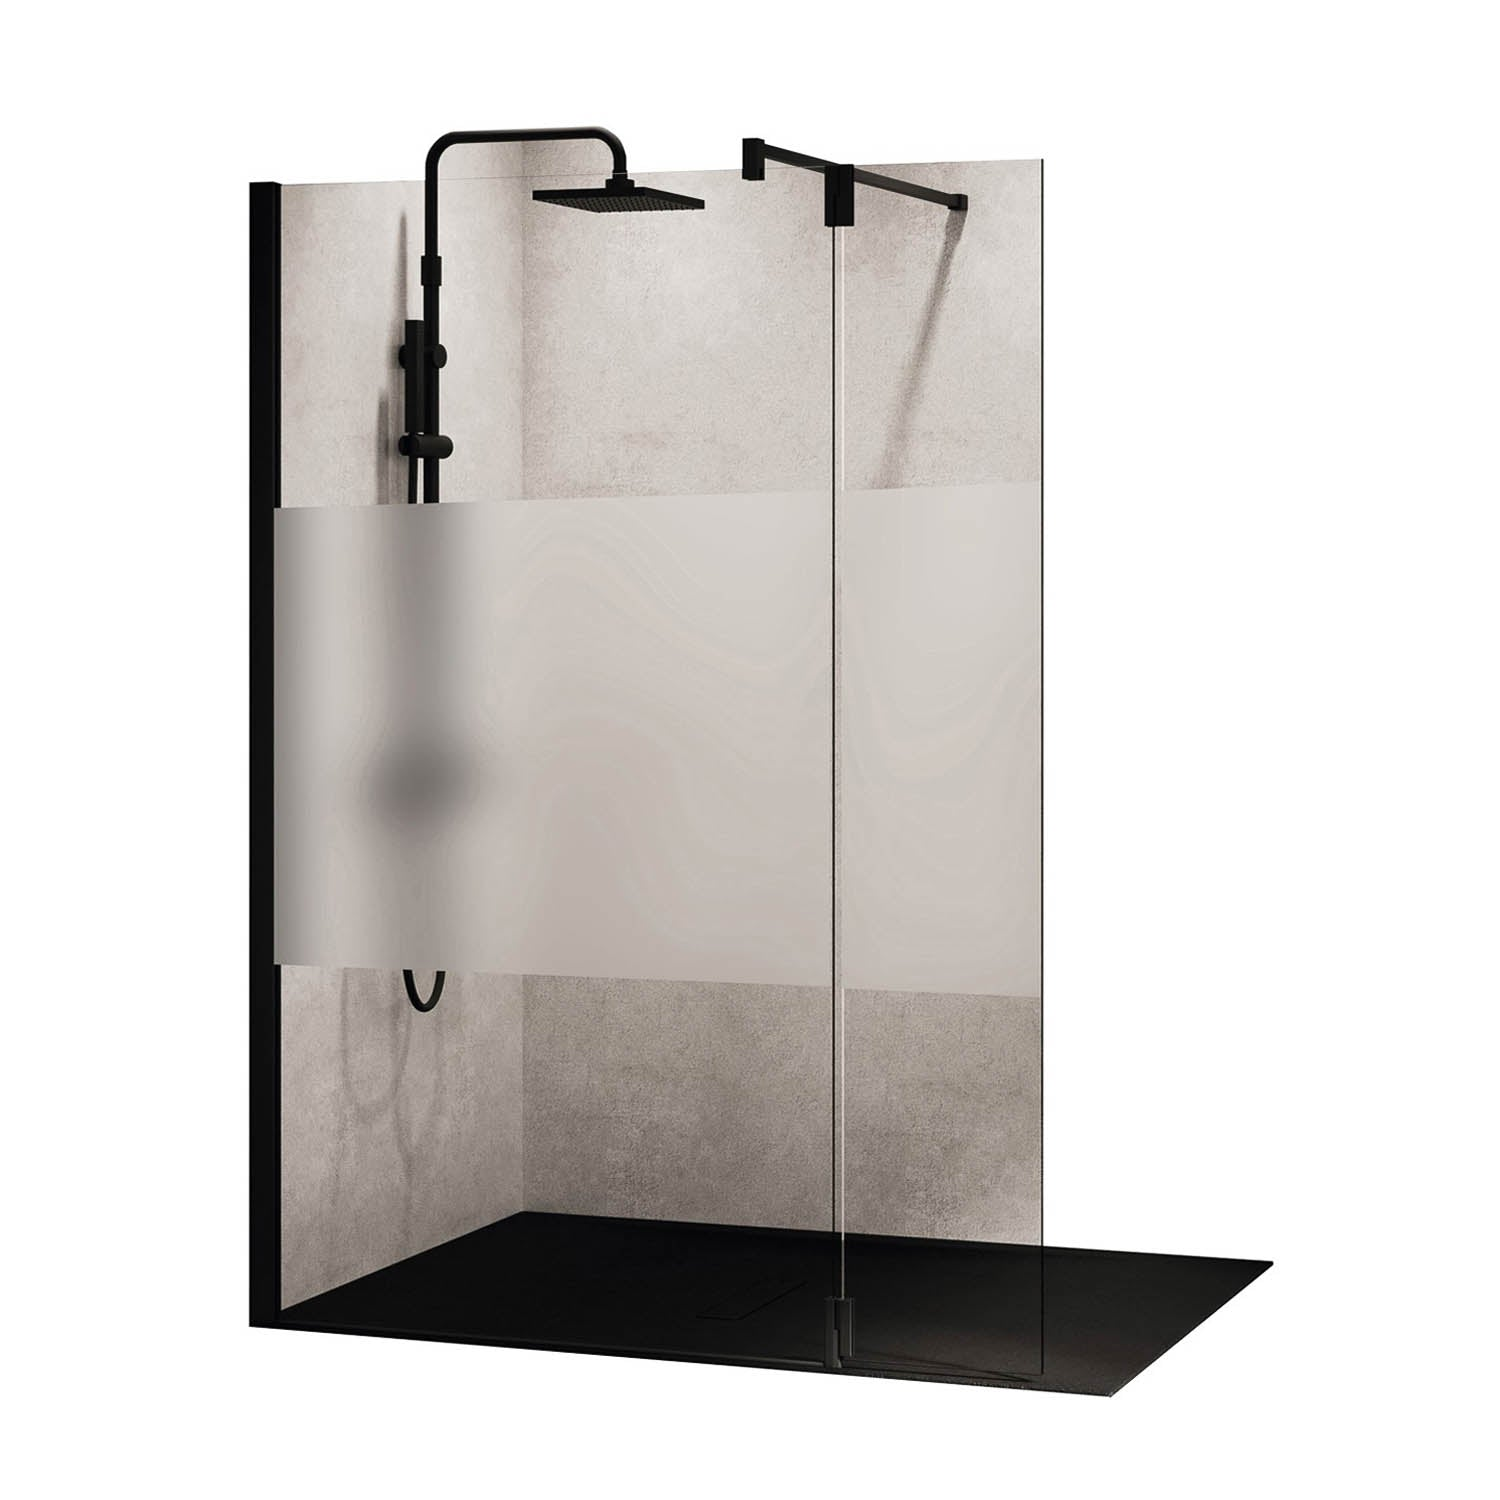 1170-1200mm Ergo Wet Room Screen Satin Band Glass with a matt black finish on a white background